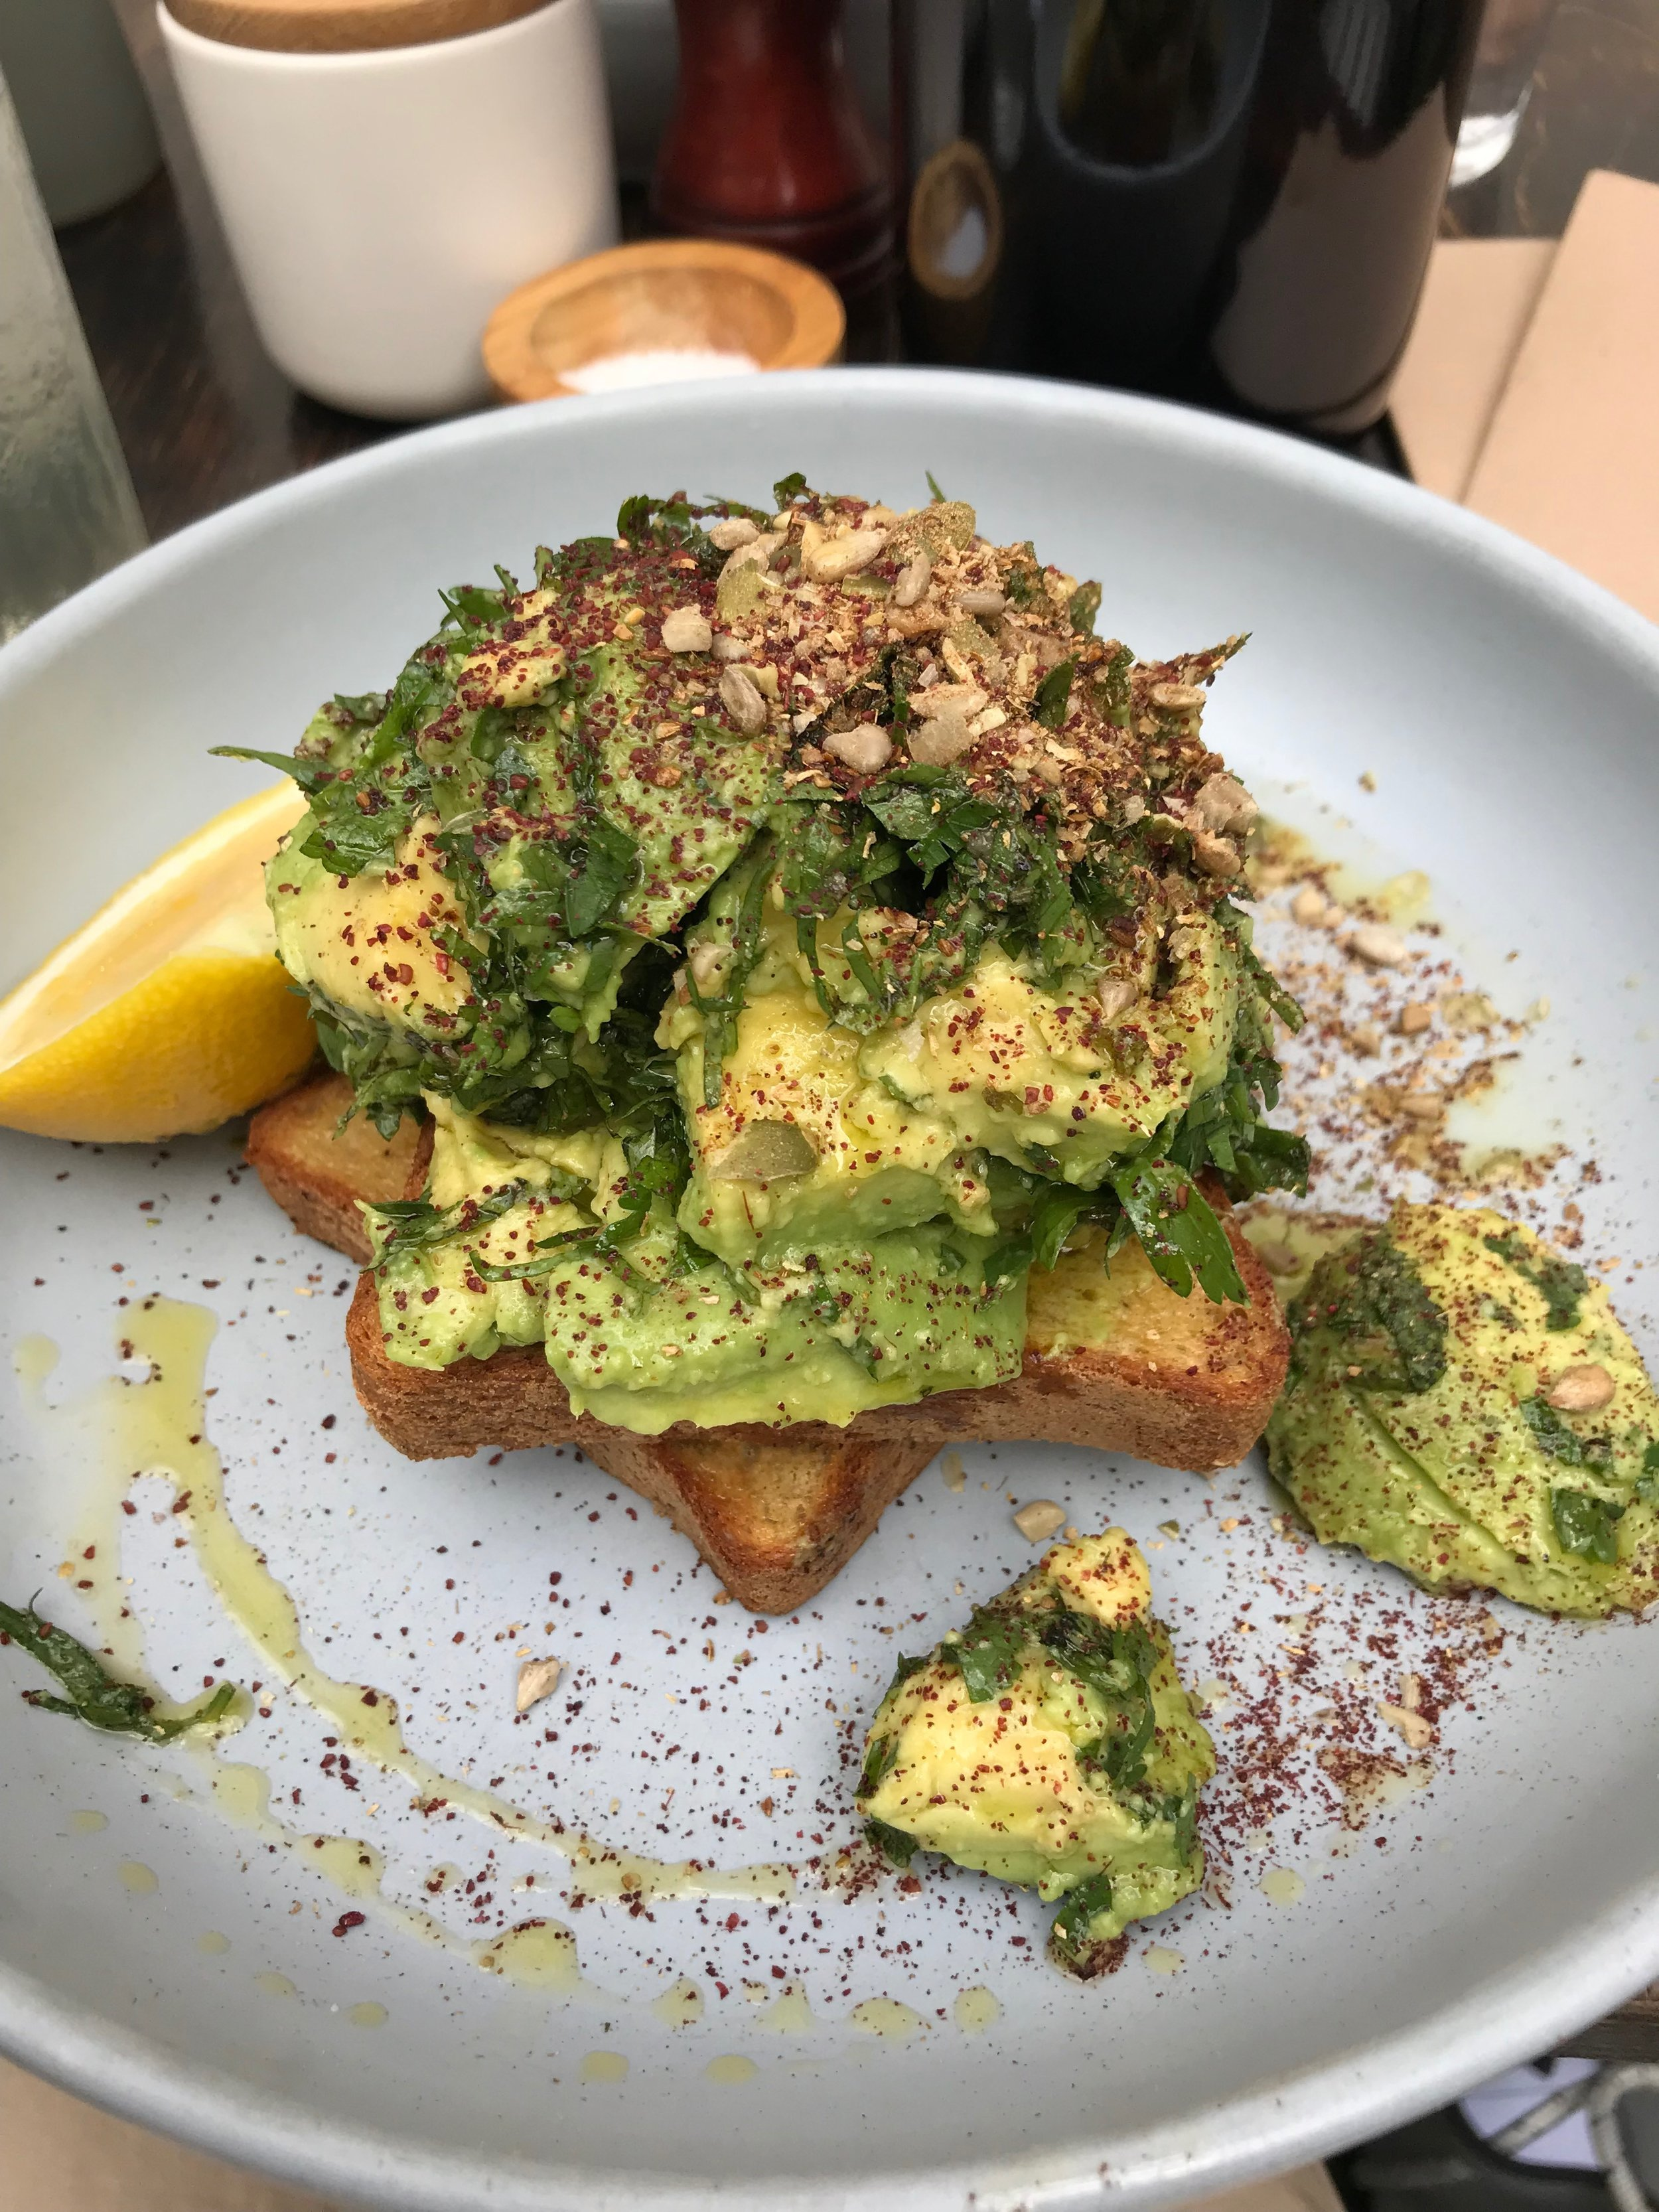 Archie's All Day  189 Gertrude St, Fitzroy  A must stop morning cafe. Wonderful coffee and delicious breakfast/brunch options. The perfect morning pitstop is a visit to Archie's All Day. Be sure to try their avo toast and coconut yoghurt bowl w homemade granola.